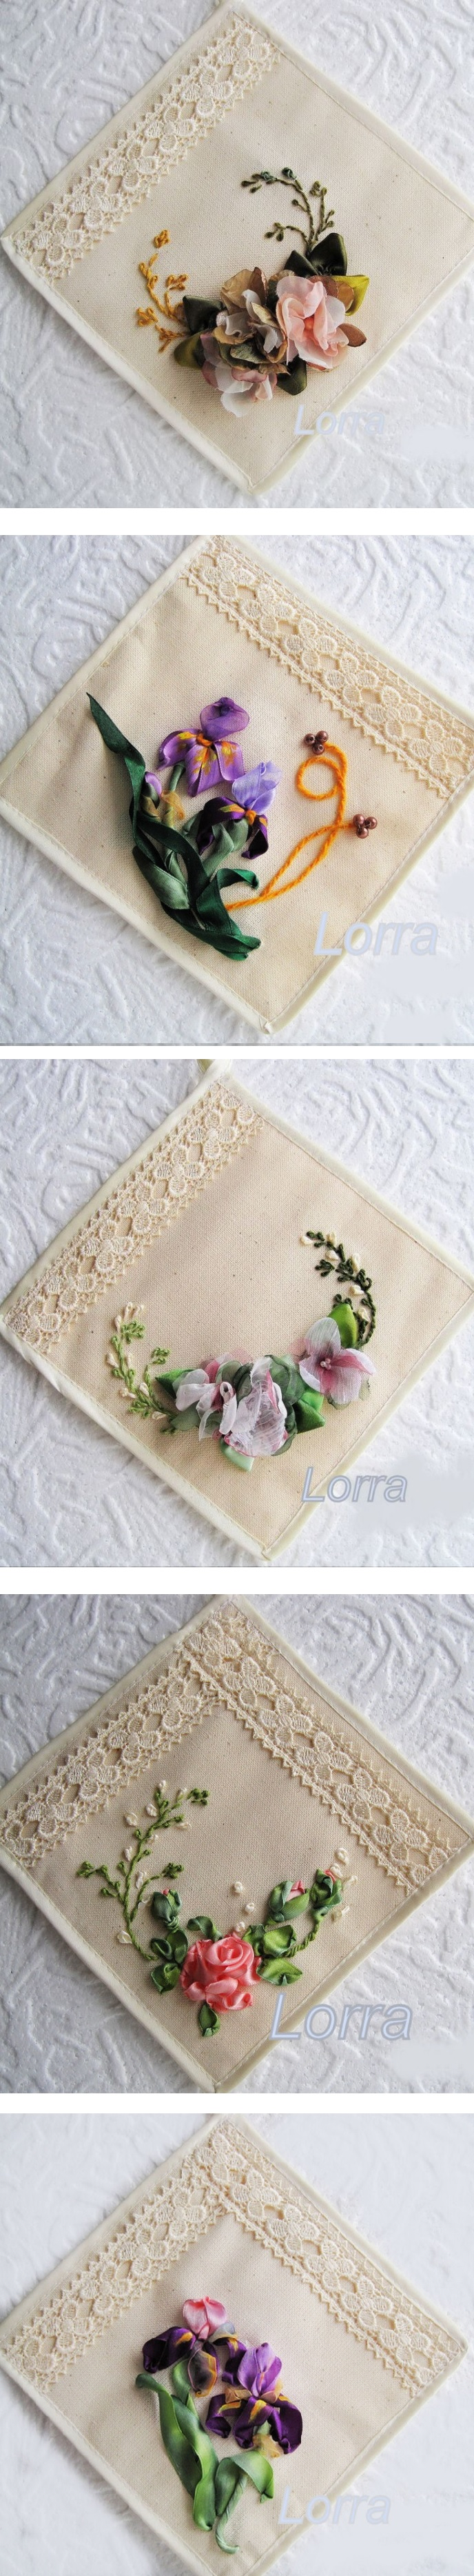 Handmade table mats design - Neat Idea For Handmade Coasters Or Small Table Mats Love The Use Of Ribbonwork